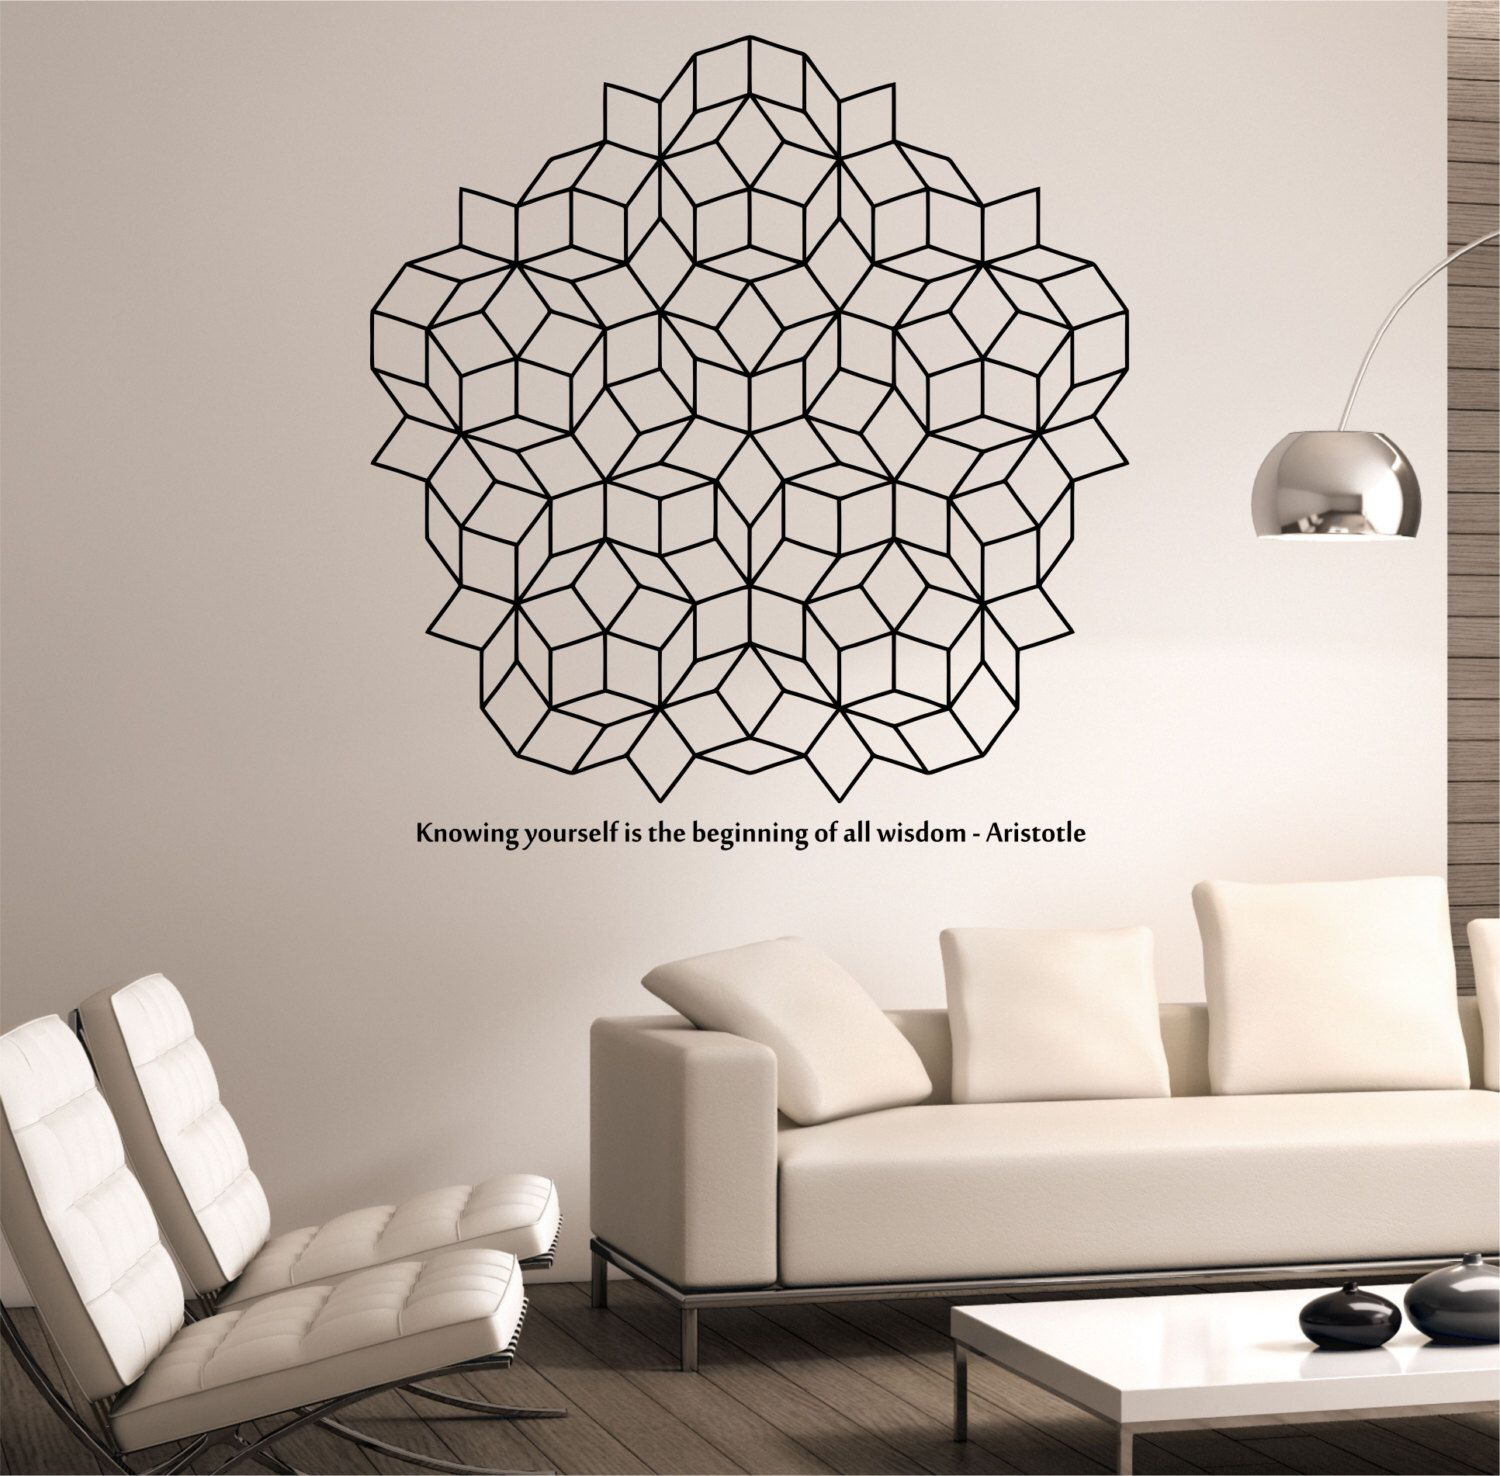 Penrose Tiling Wall Decal WITH QUOTE vinyl Sticker Art Decor Bedroom Design  Mural interior design Science. Penrose Tiling Wall Decal WITH QUOTE vinyl Sticker Art Decor